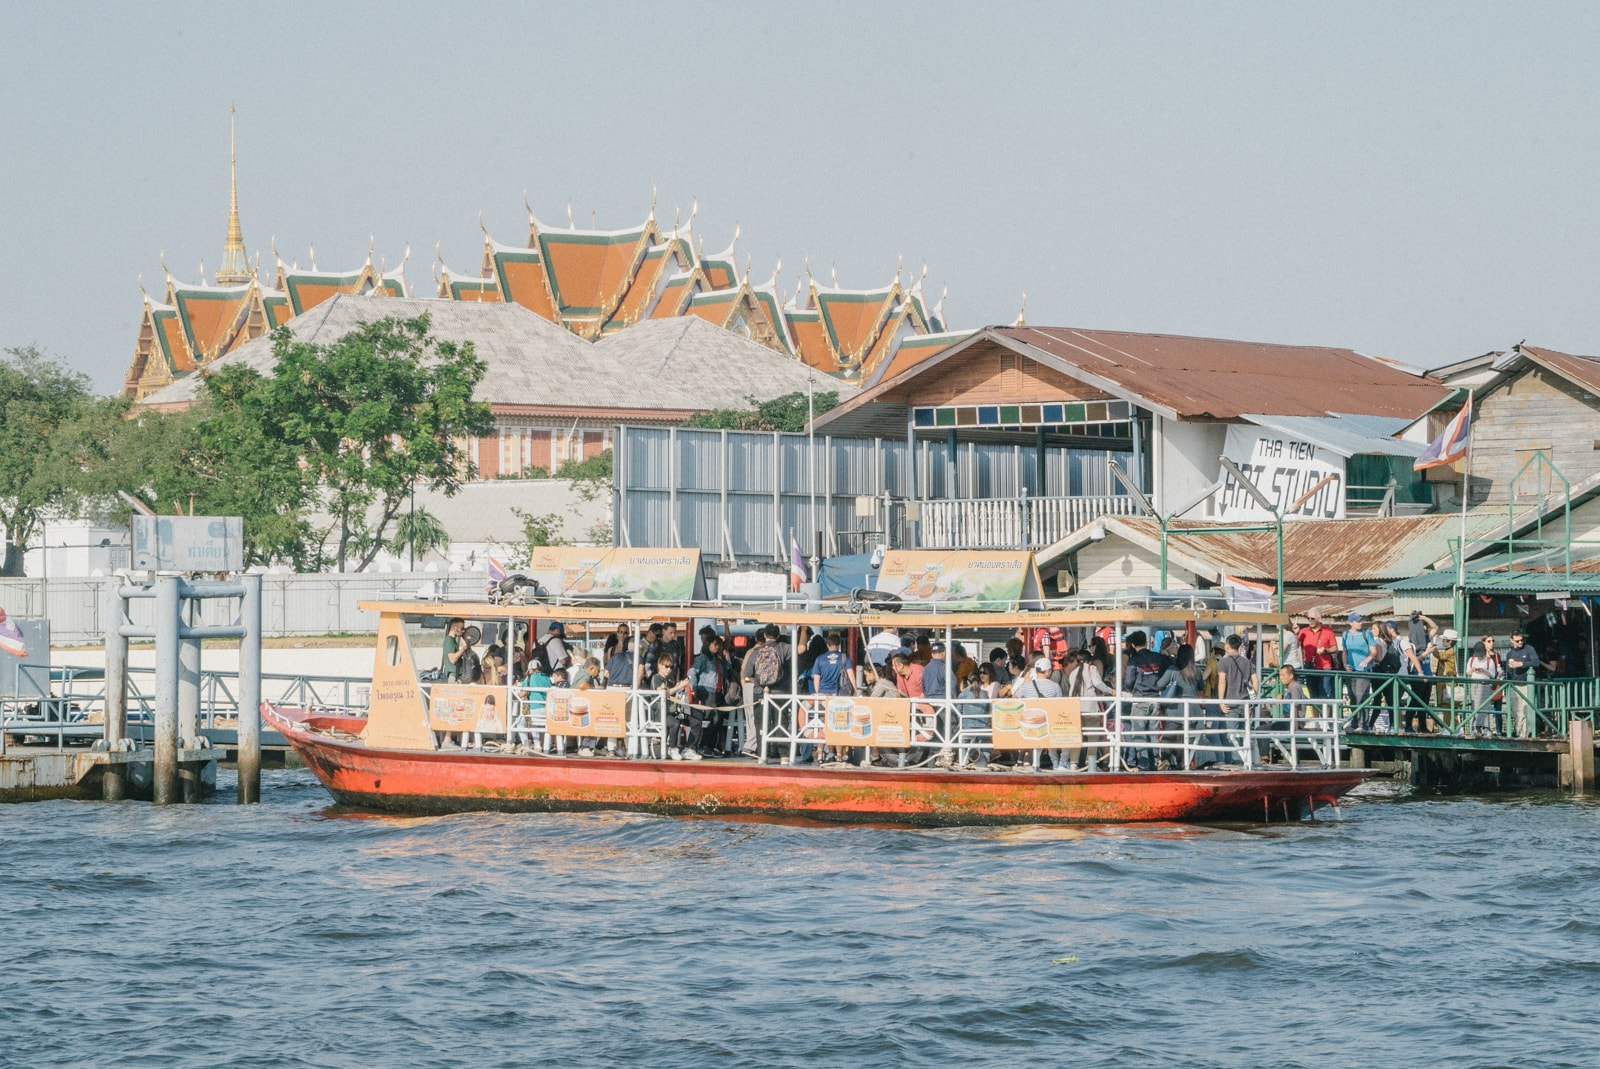 The Ultimate Guide to Navigating the Chao Phraya River